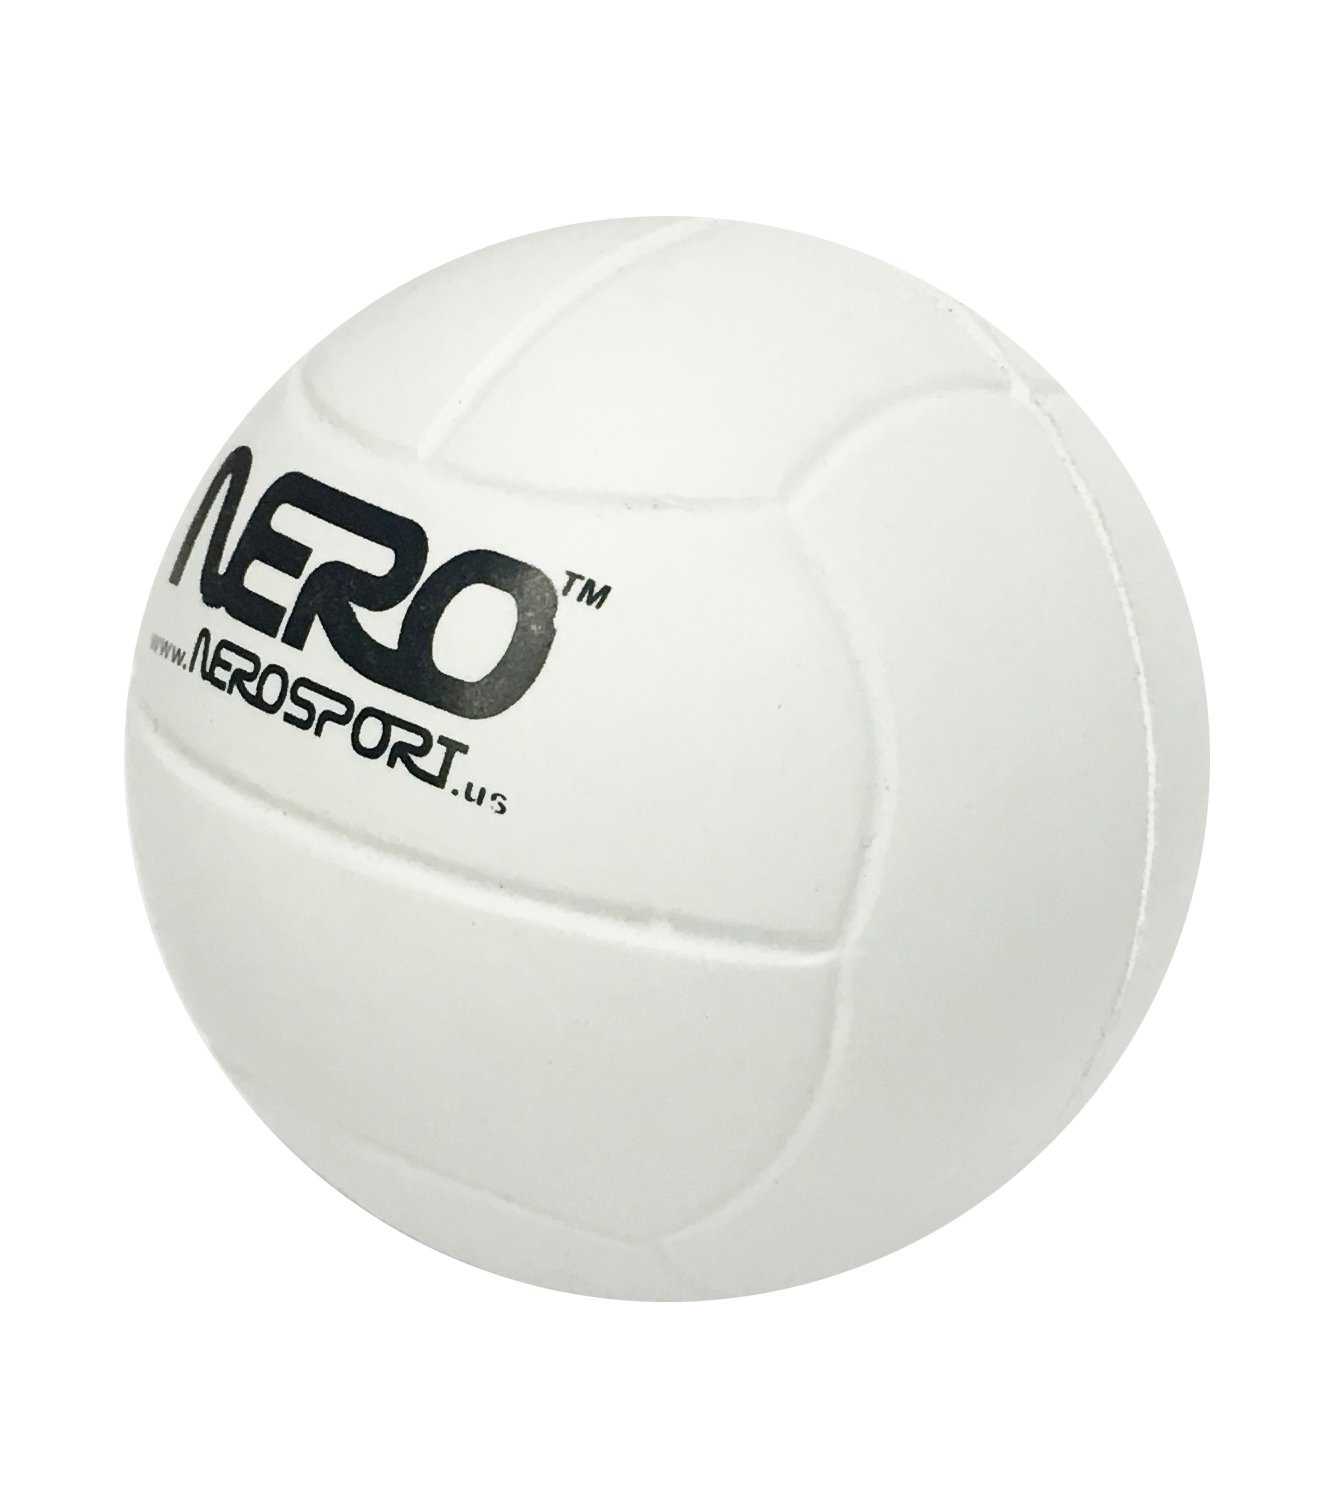 Nero NS-RS High Bounce Rubber Volleyball Toy 2.5 inch Skills Development Toy Great For the Streets Park Back Yard Agility Ball Bulk Price Birthdays Gifts Summer Ball